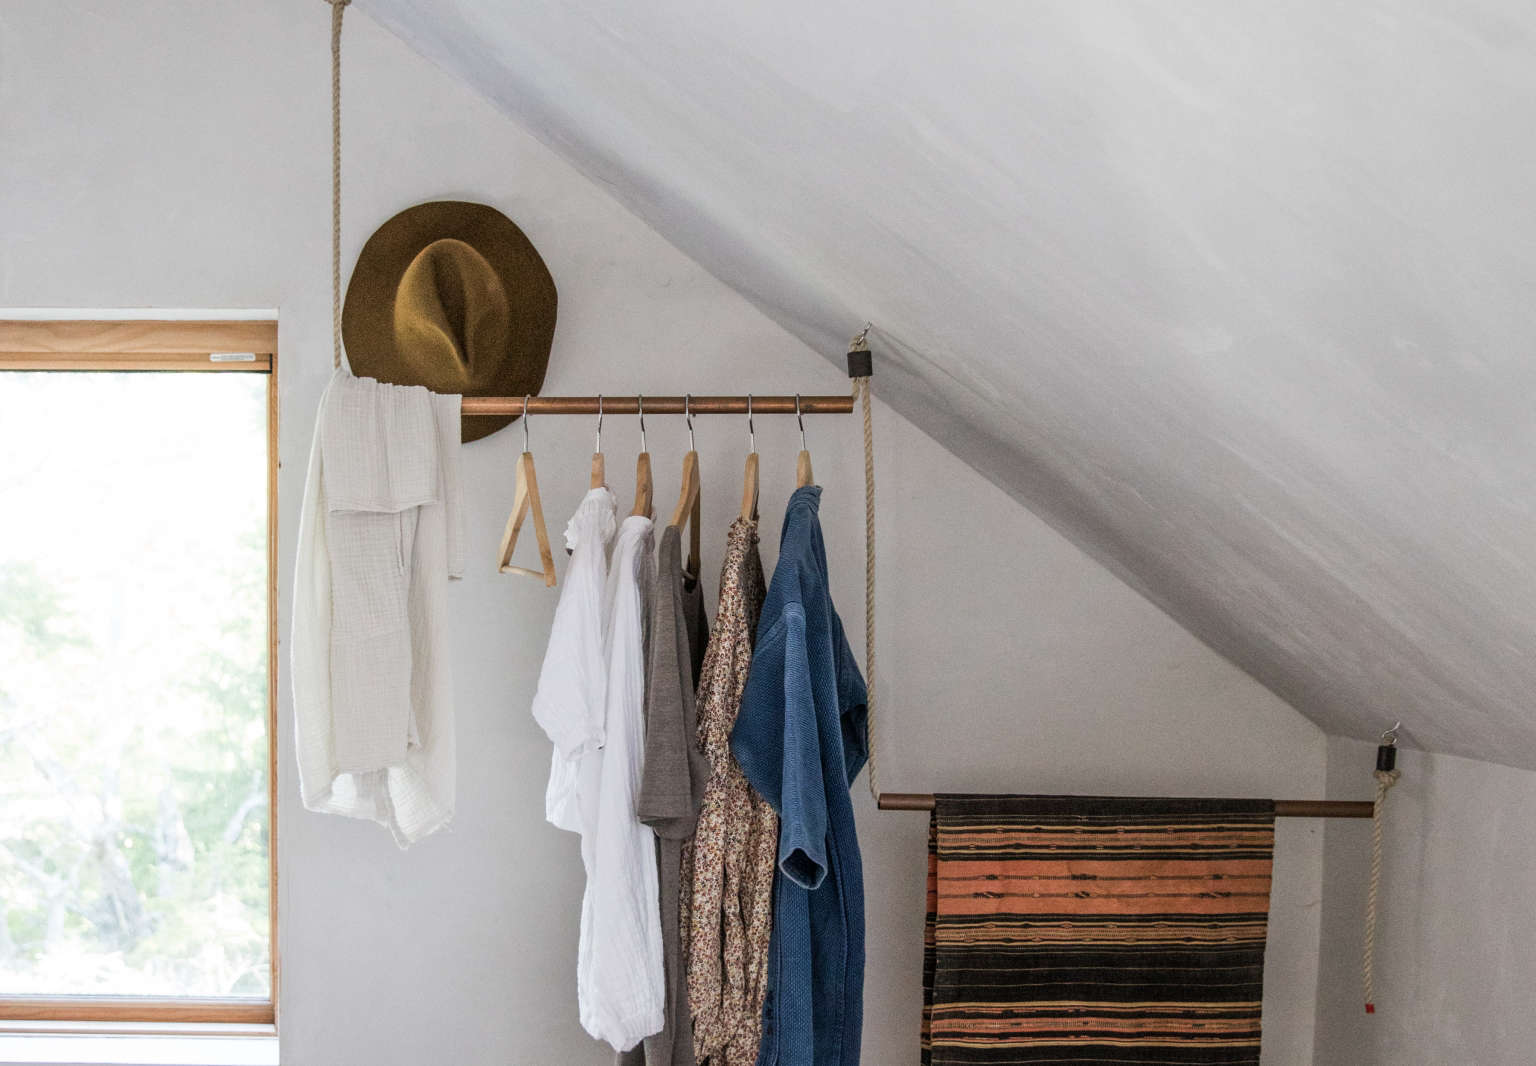 DIY Clothes Rack Closet in Soot House by Anthony Esteves, Photo by Greta Rybus